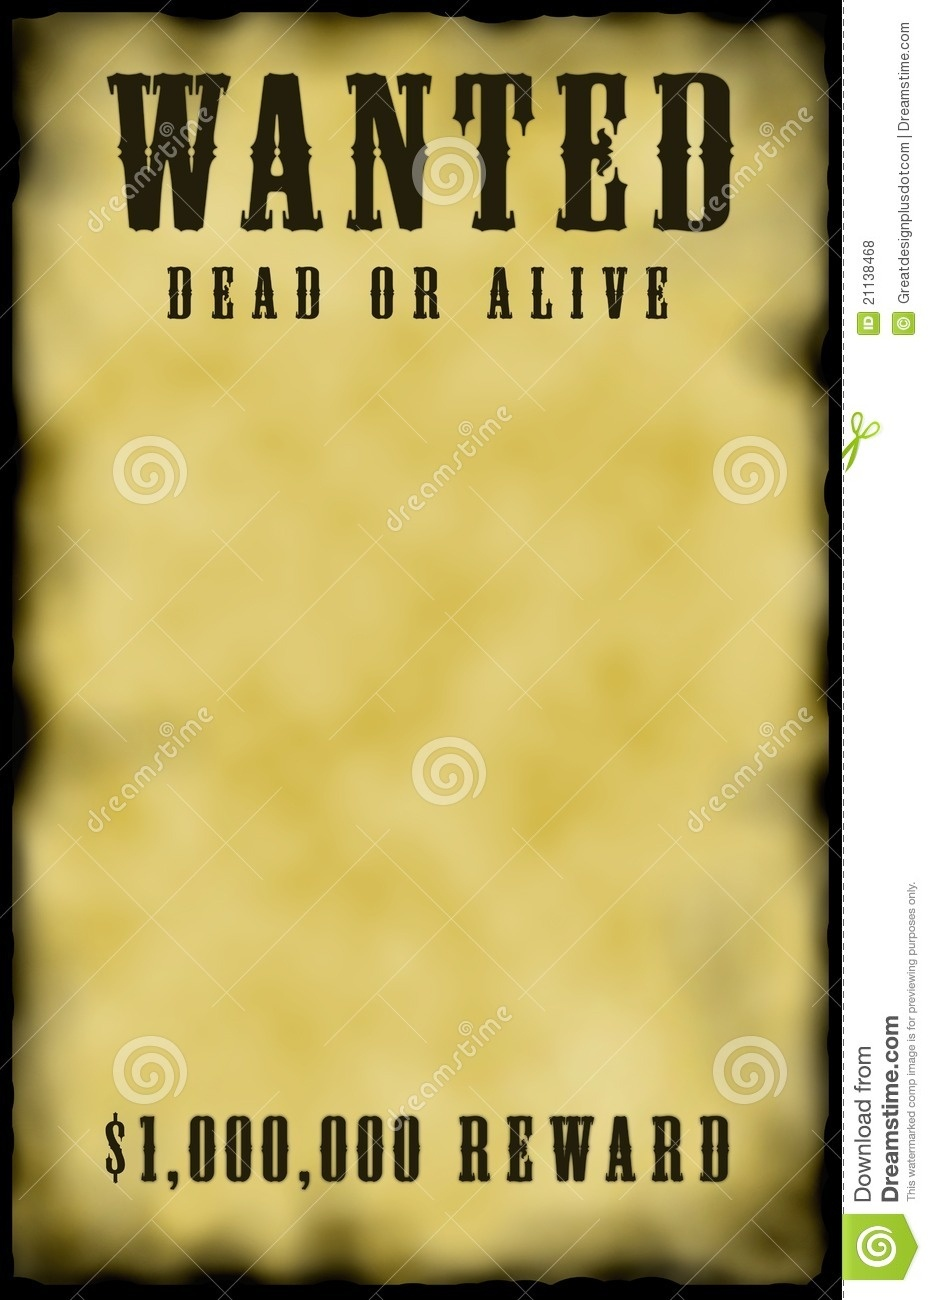 Wanted Poster! Stock Illustration. Illustration Of Criminal - 21138468 - Free Printable Wanted Poster Old West